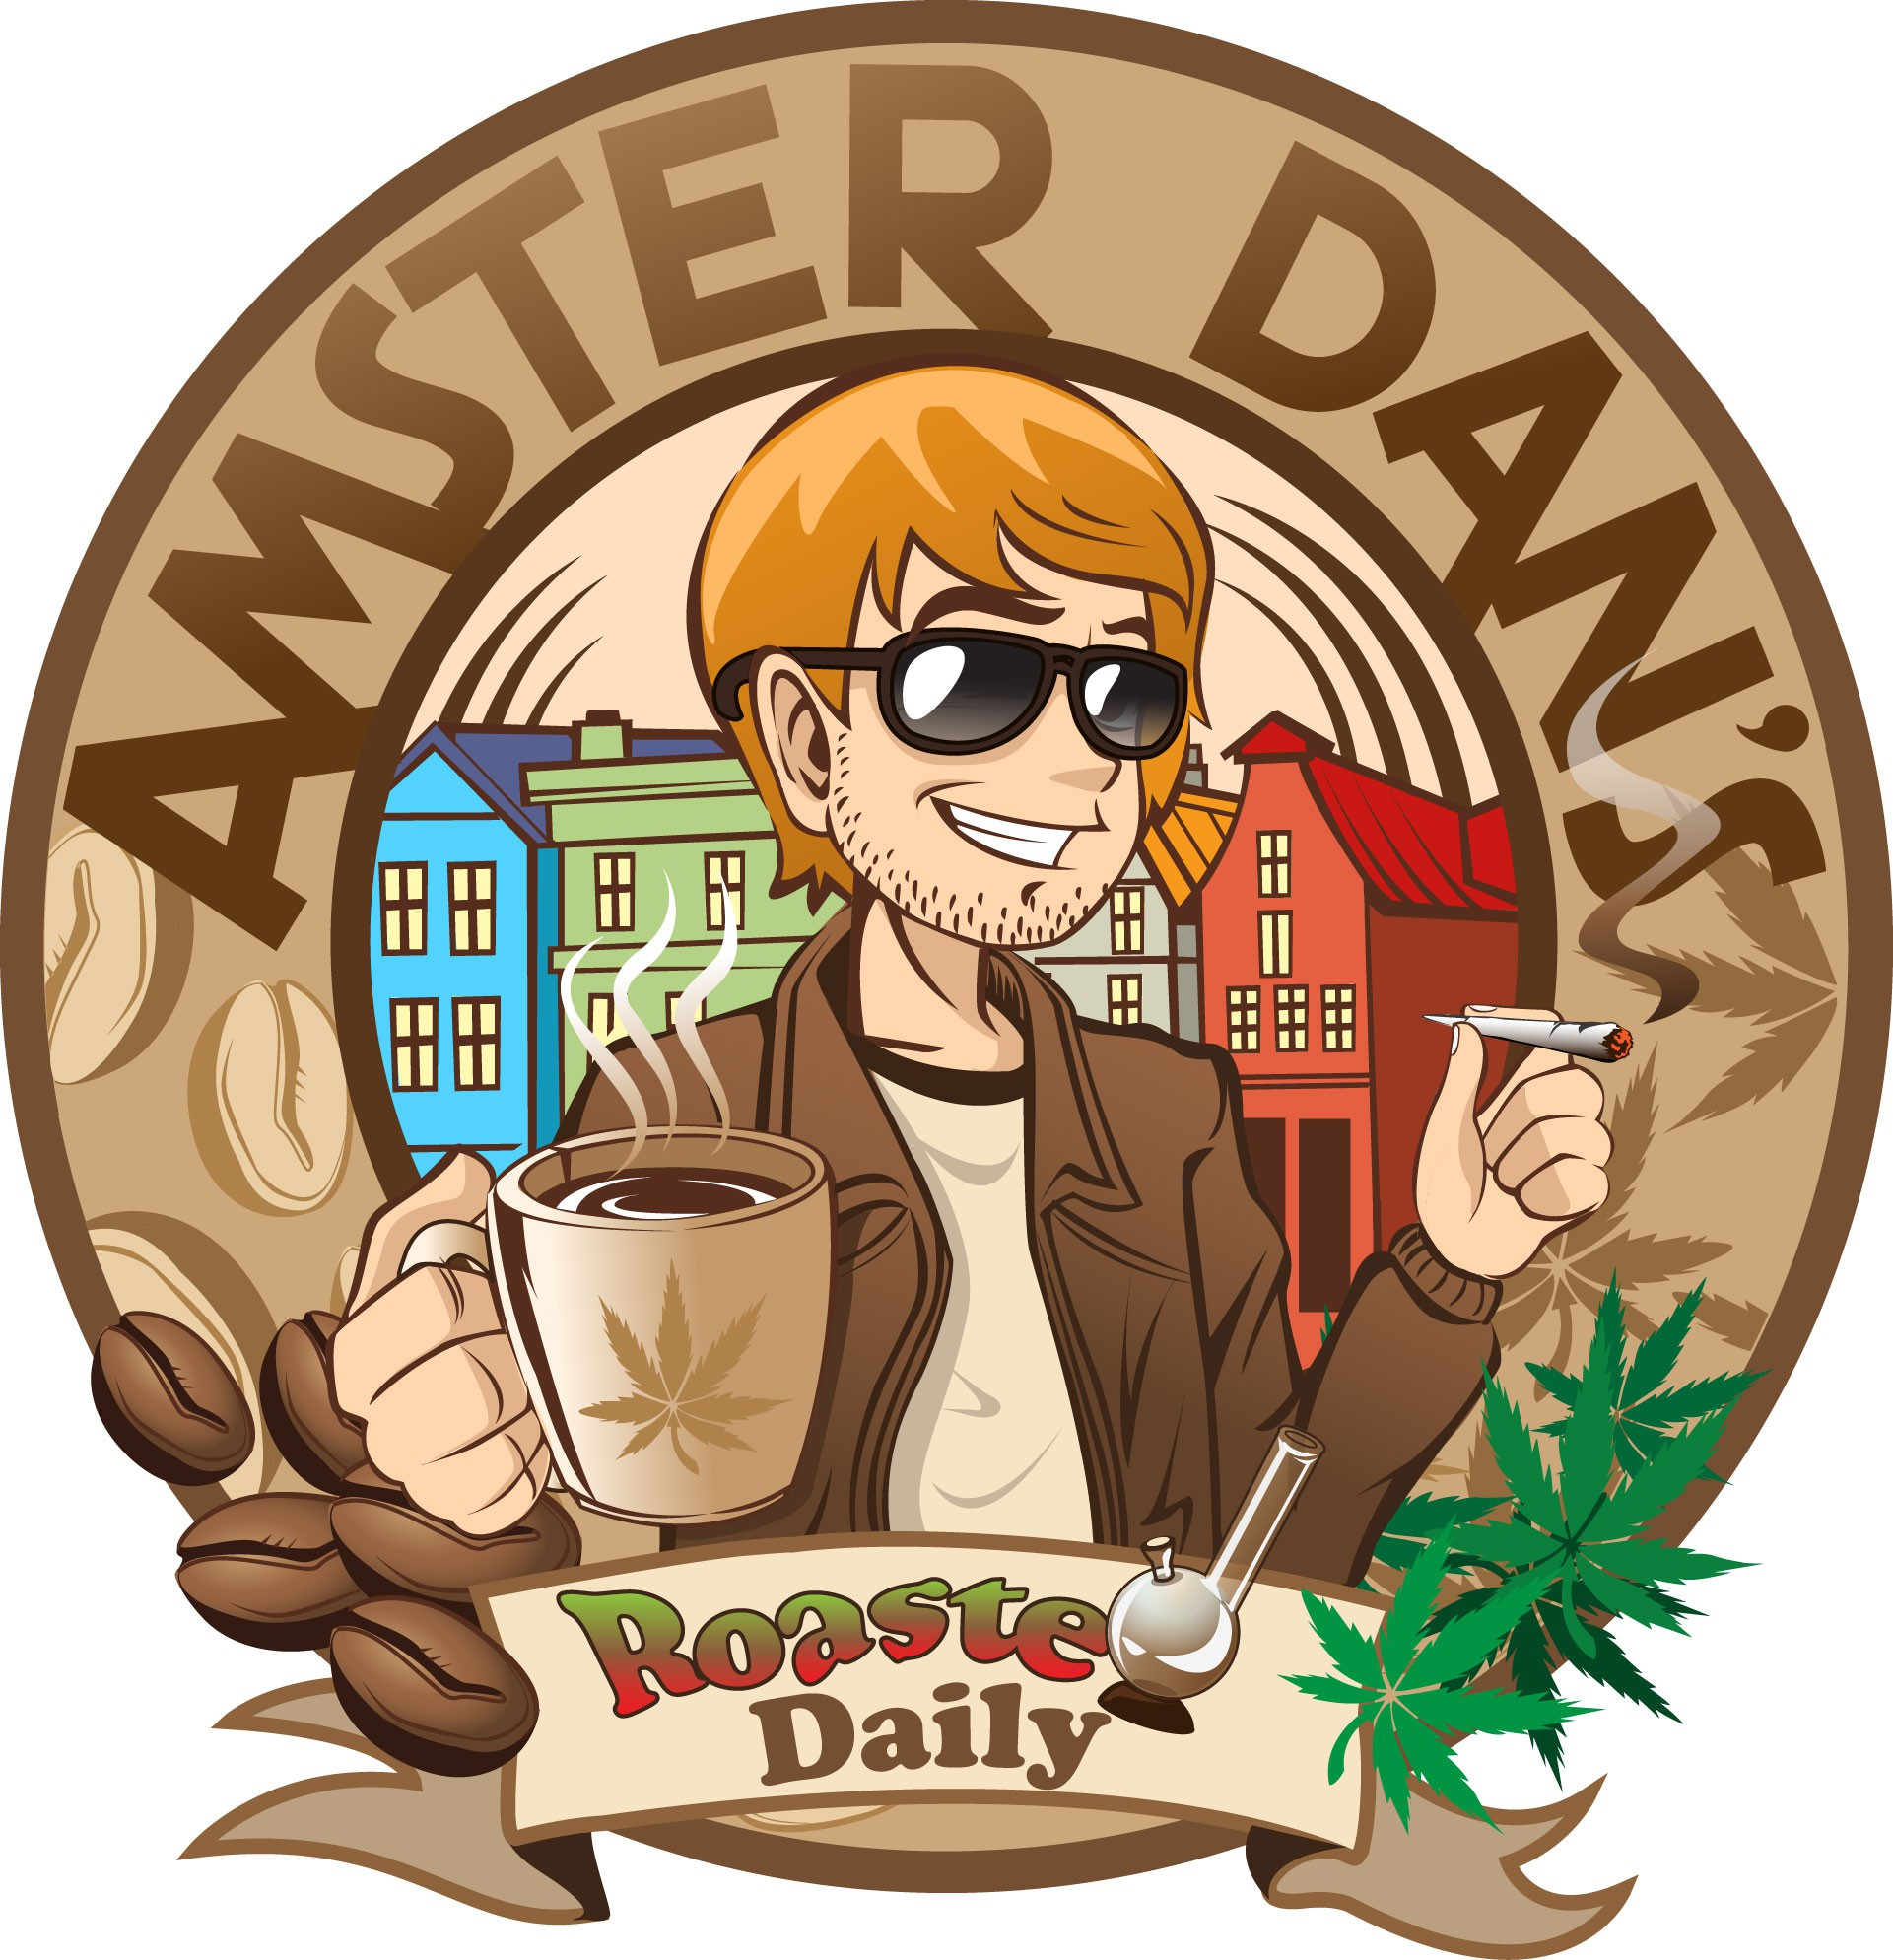 Help Amster Dan's  with an illustration